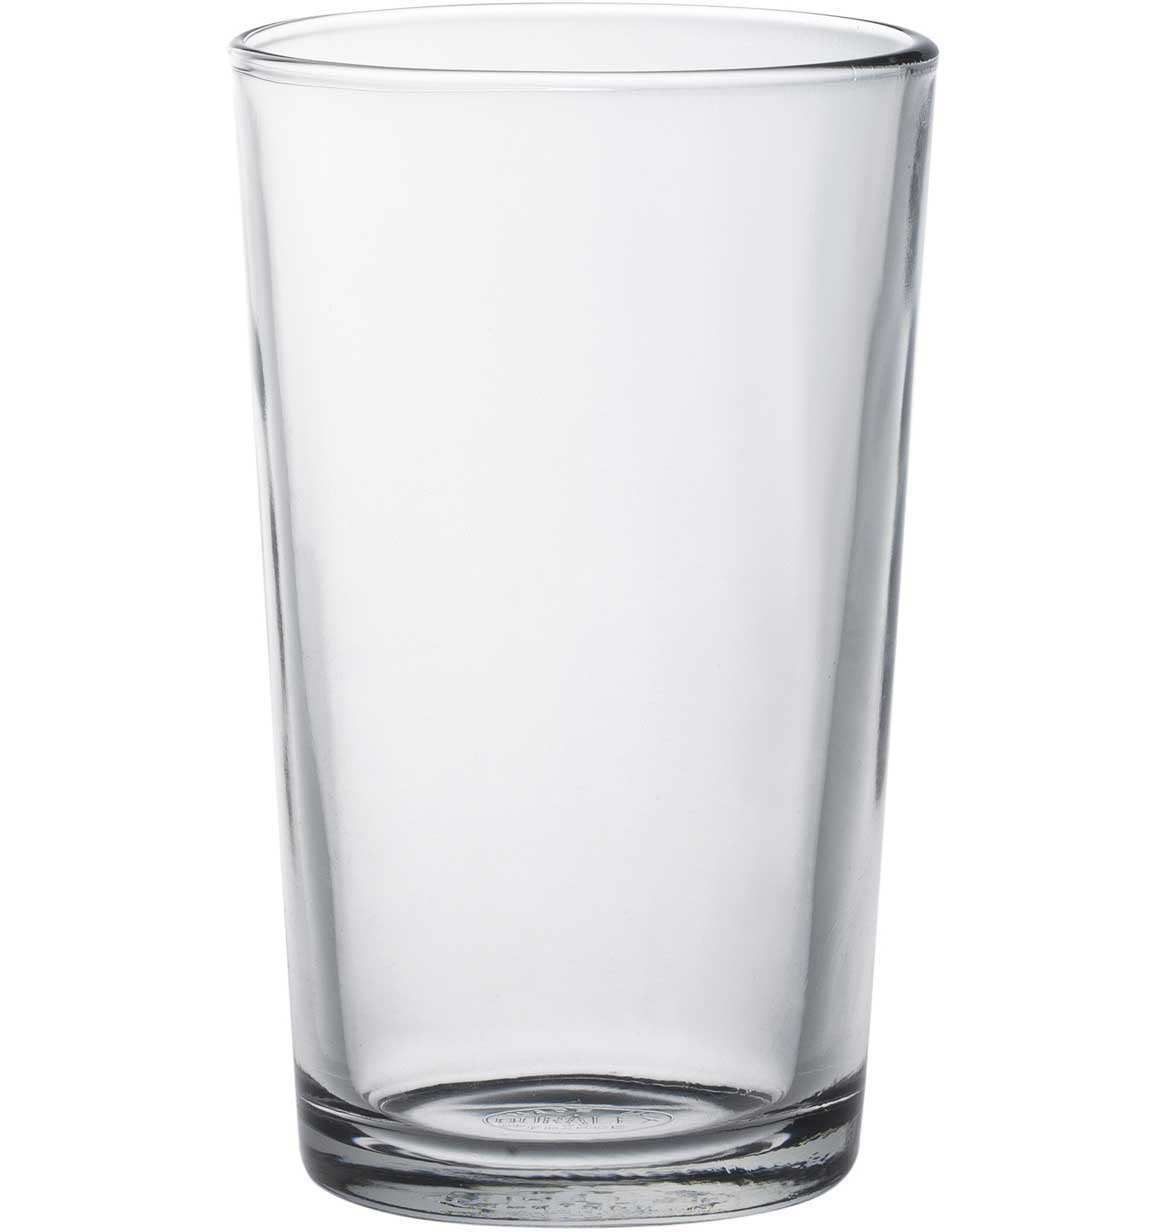 Chope Unie water glass by Duralex